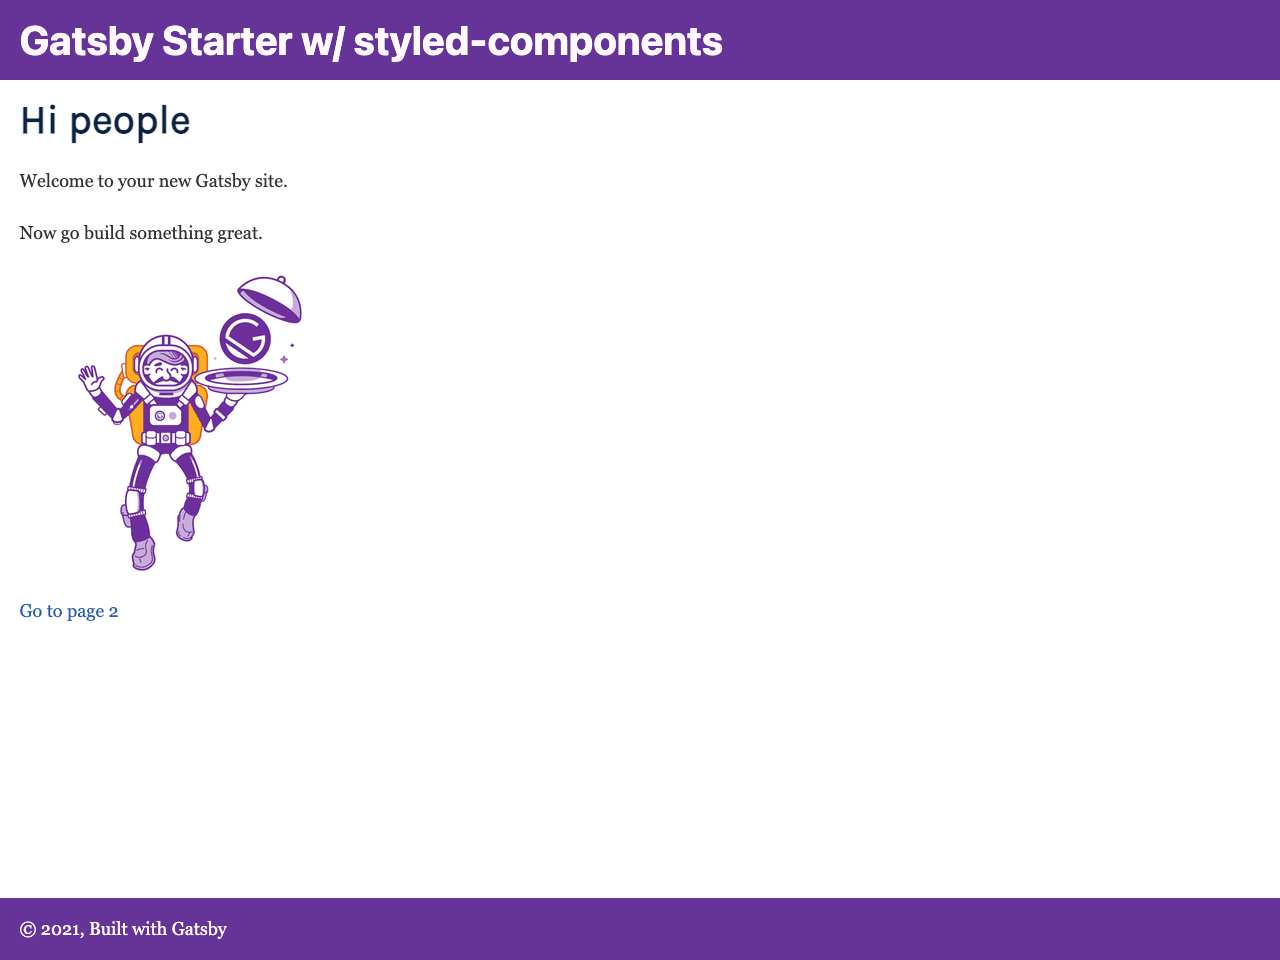 Gatsby Starter Styled Components screenshot